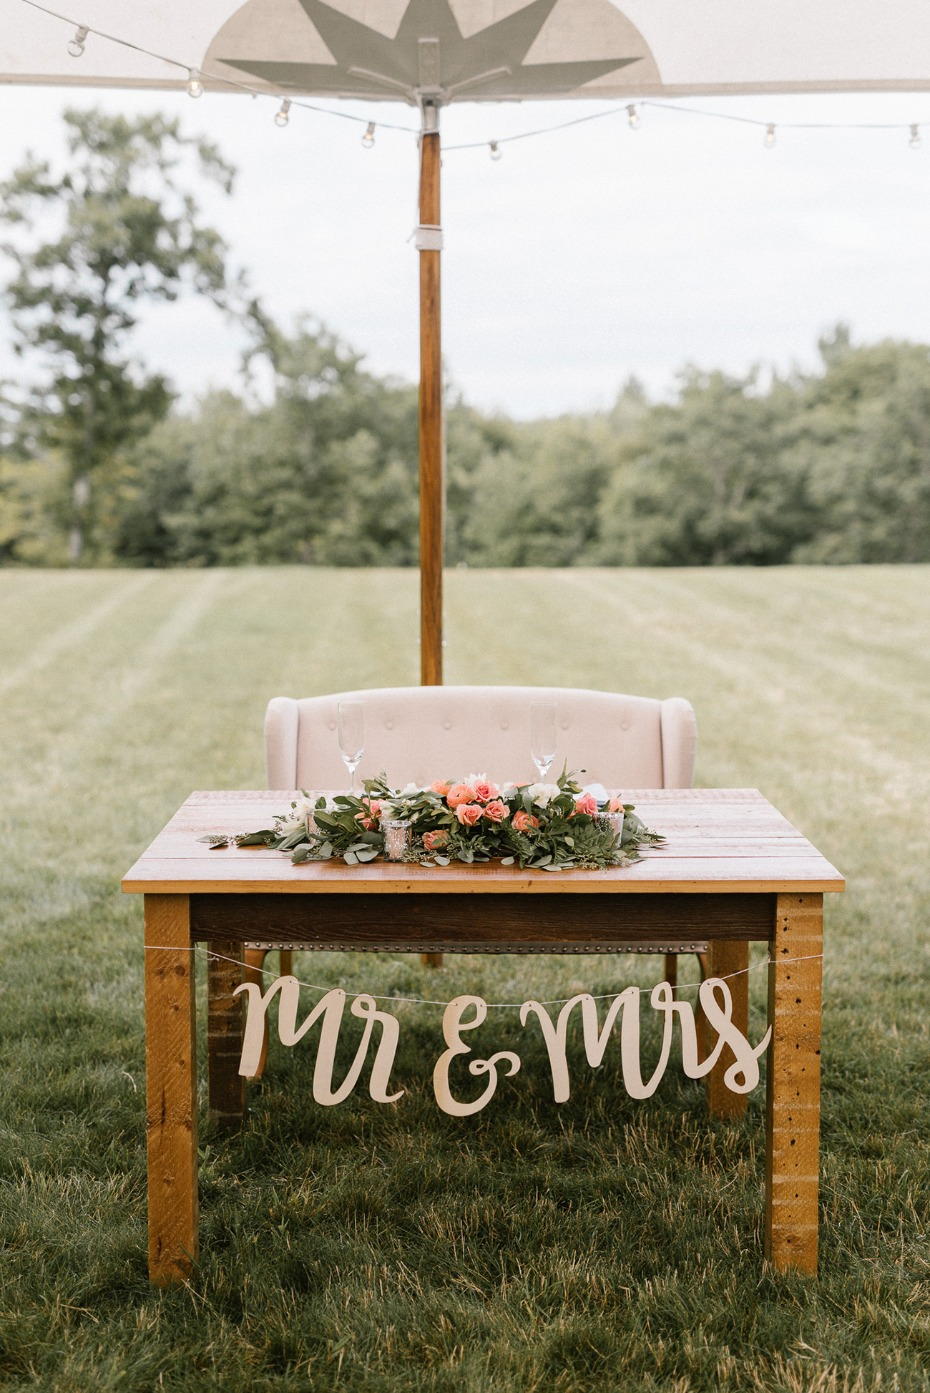 Sweet and simple Mr. and Mrs. table